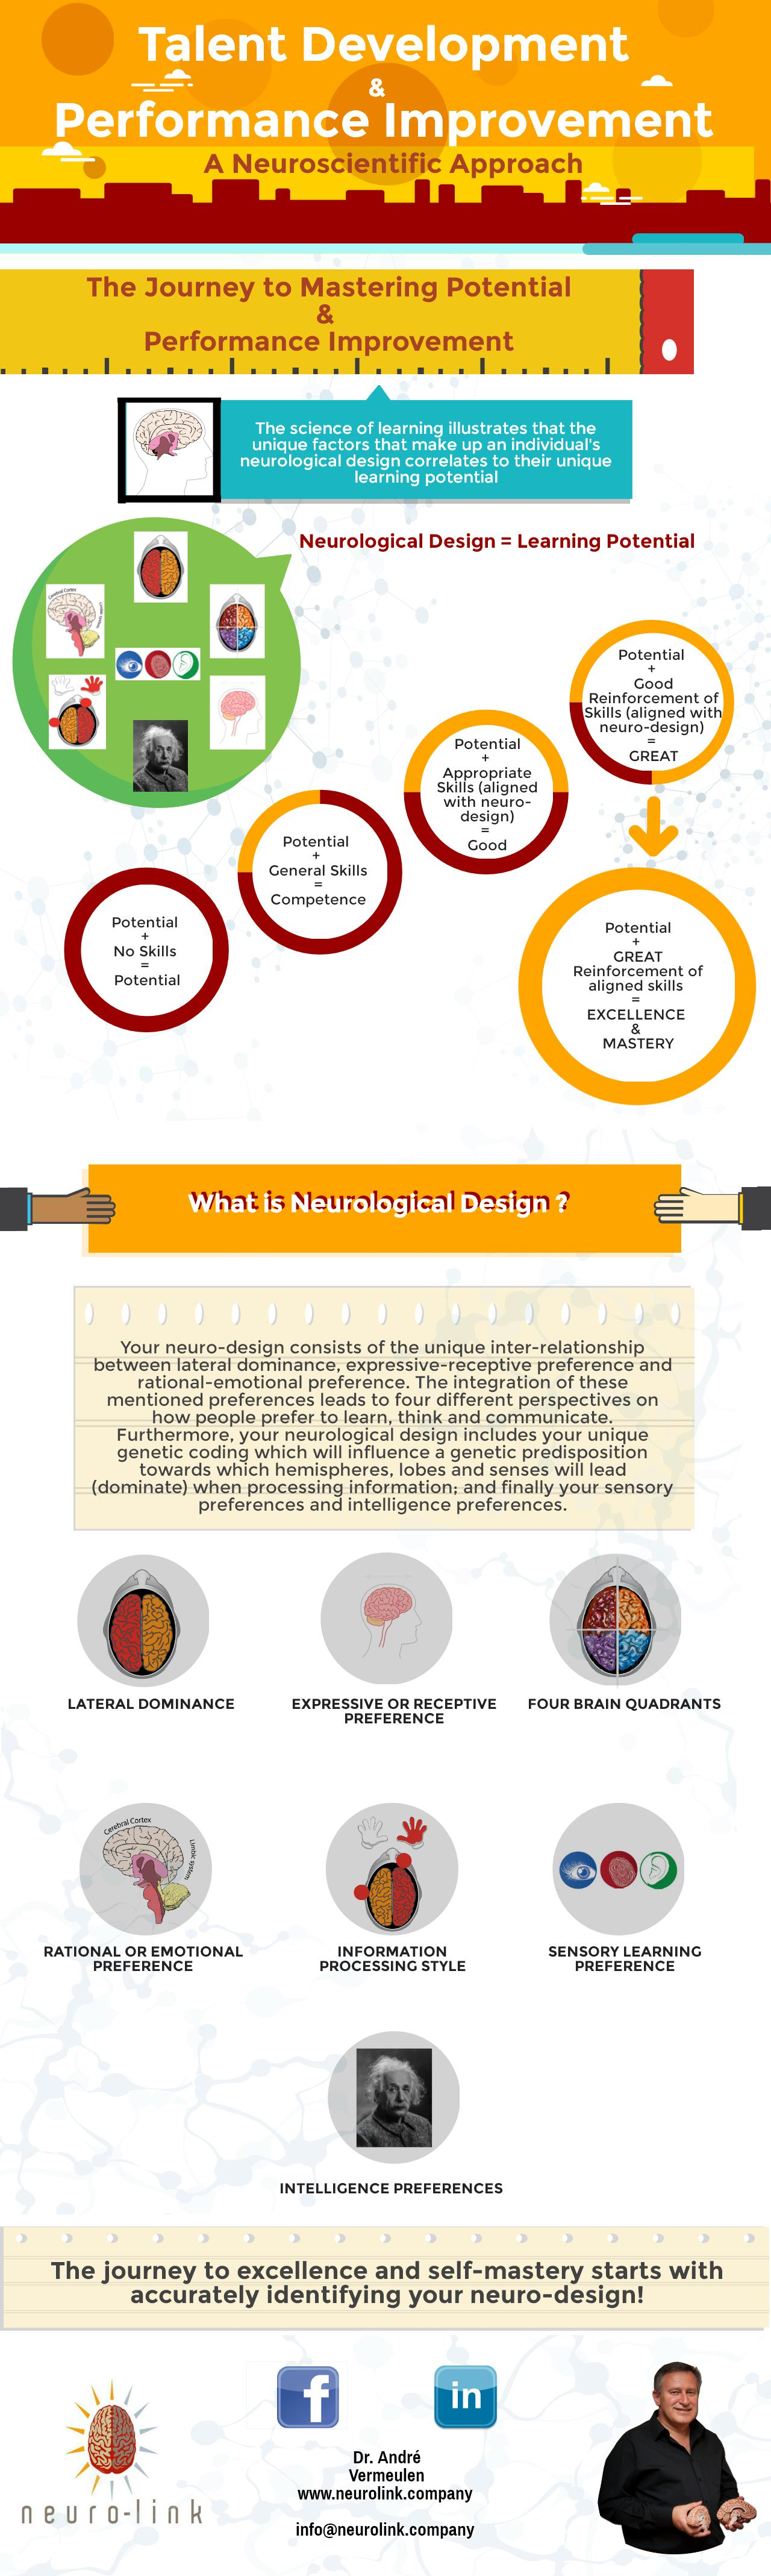 INFOGRAPHIC neuroscientific-approach-talent-development-performance